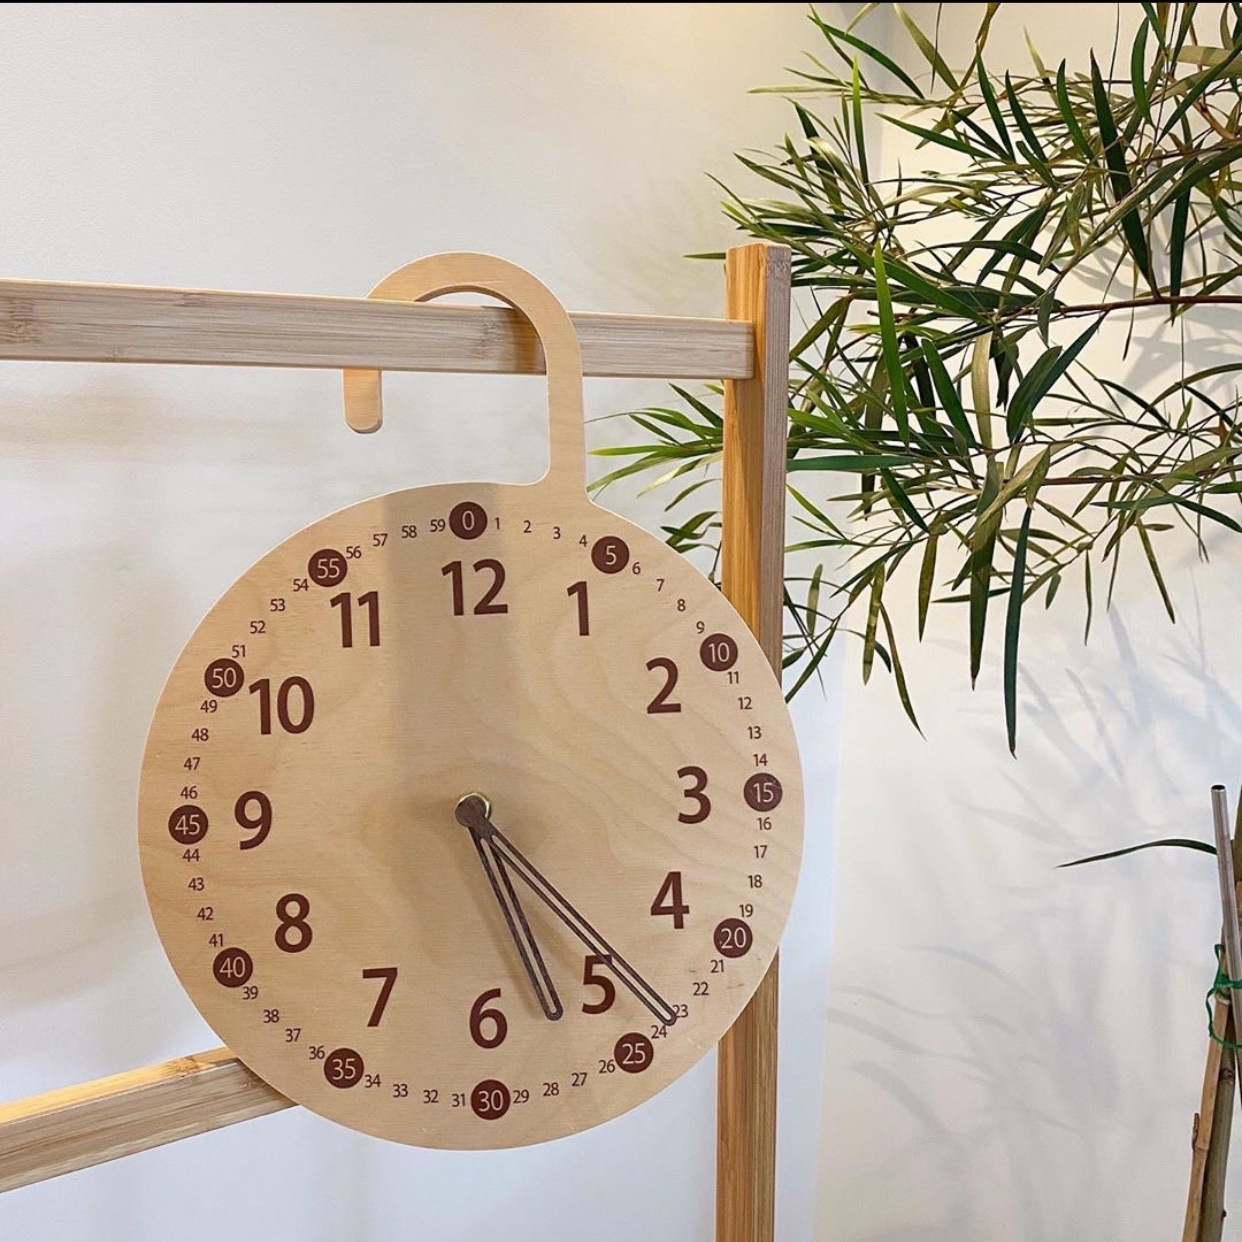 Decorative Wooden Hanging Analog Clock for Keeping Track of Time